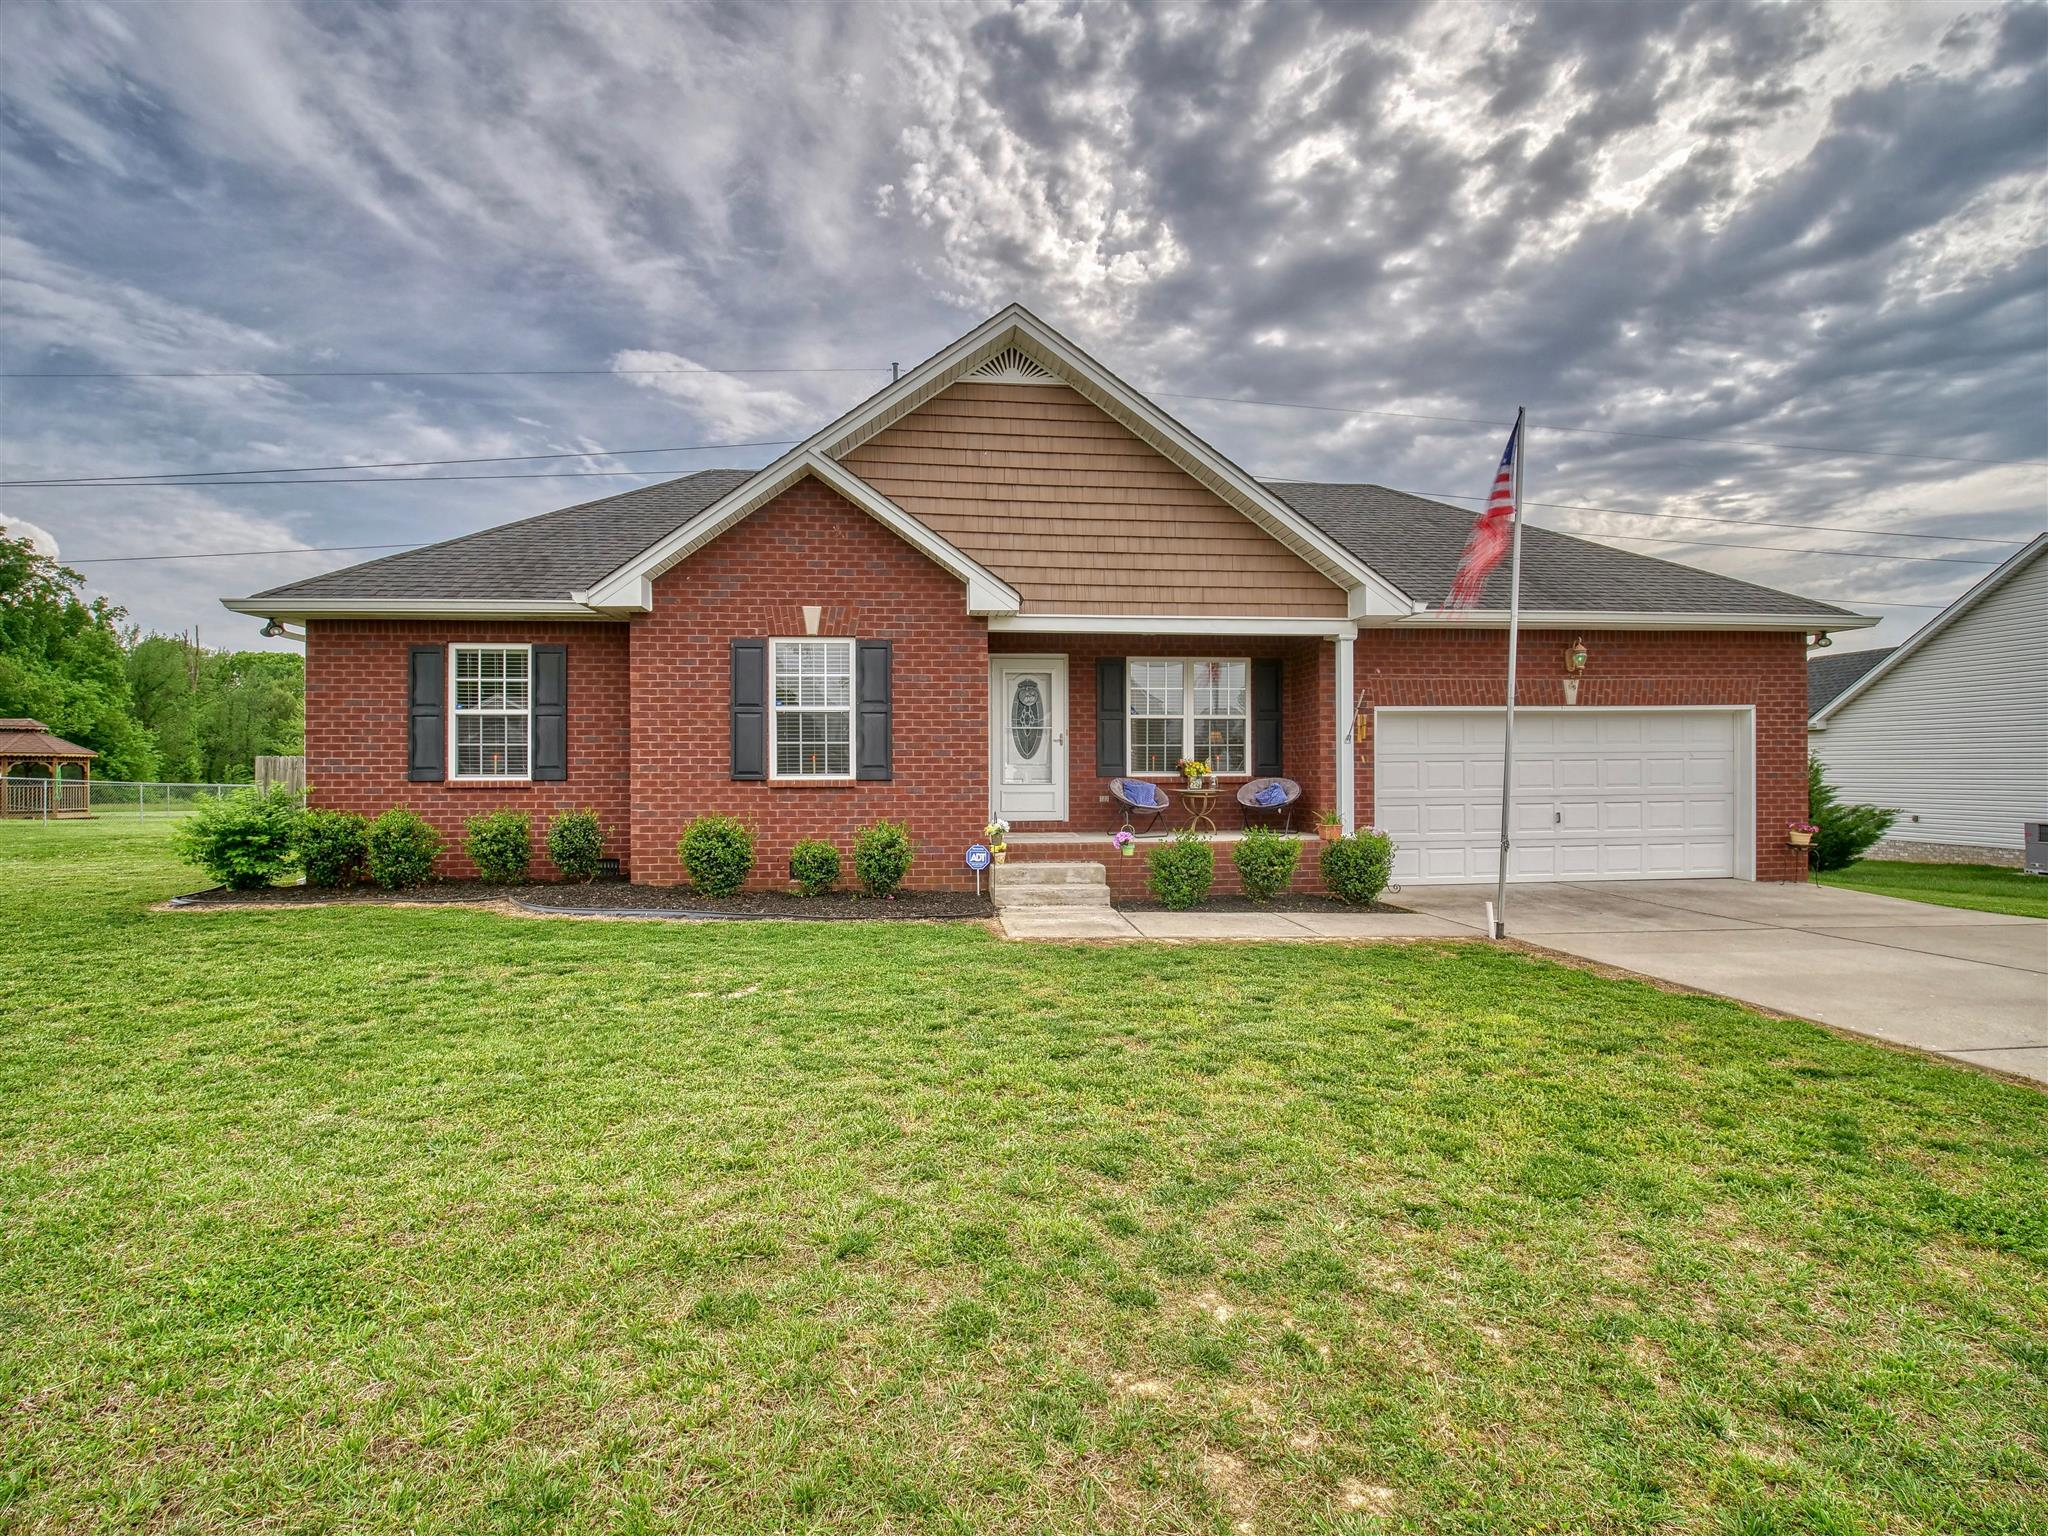 3BR/2BA Home On Level .56 Acre Lot With Spacious Living Room And Kitchen.  Located At 124 Beaver Creek Dr., Portland, TN,  37148